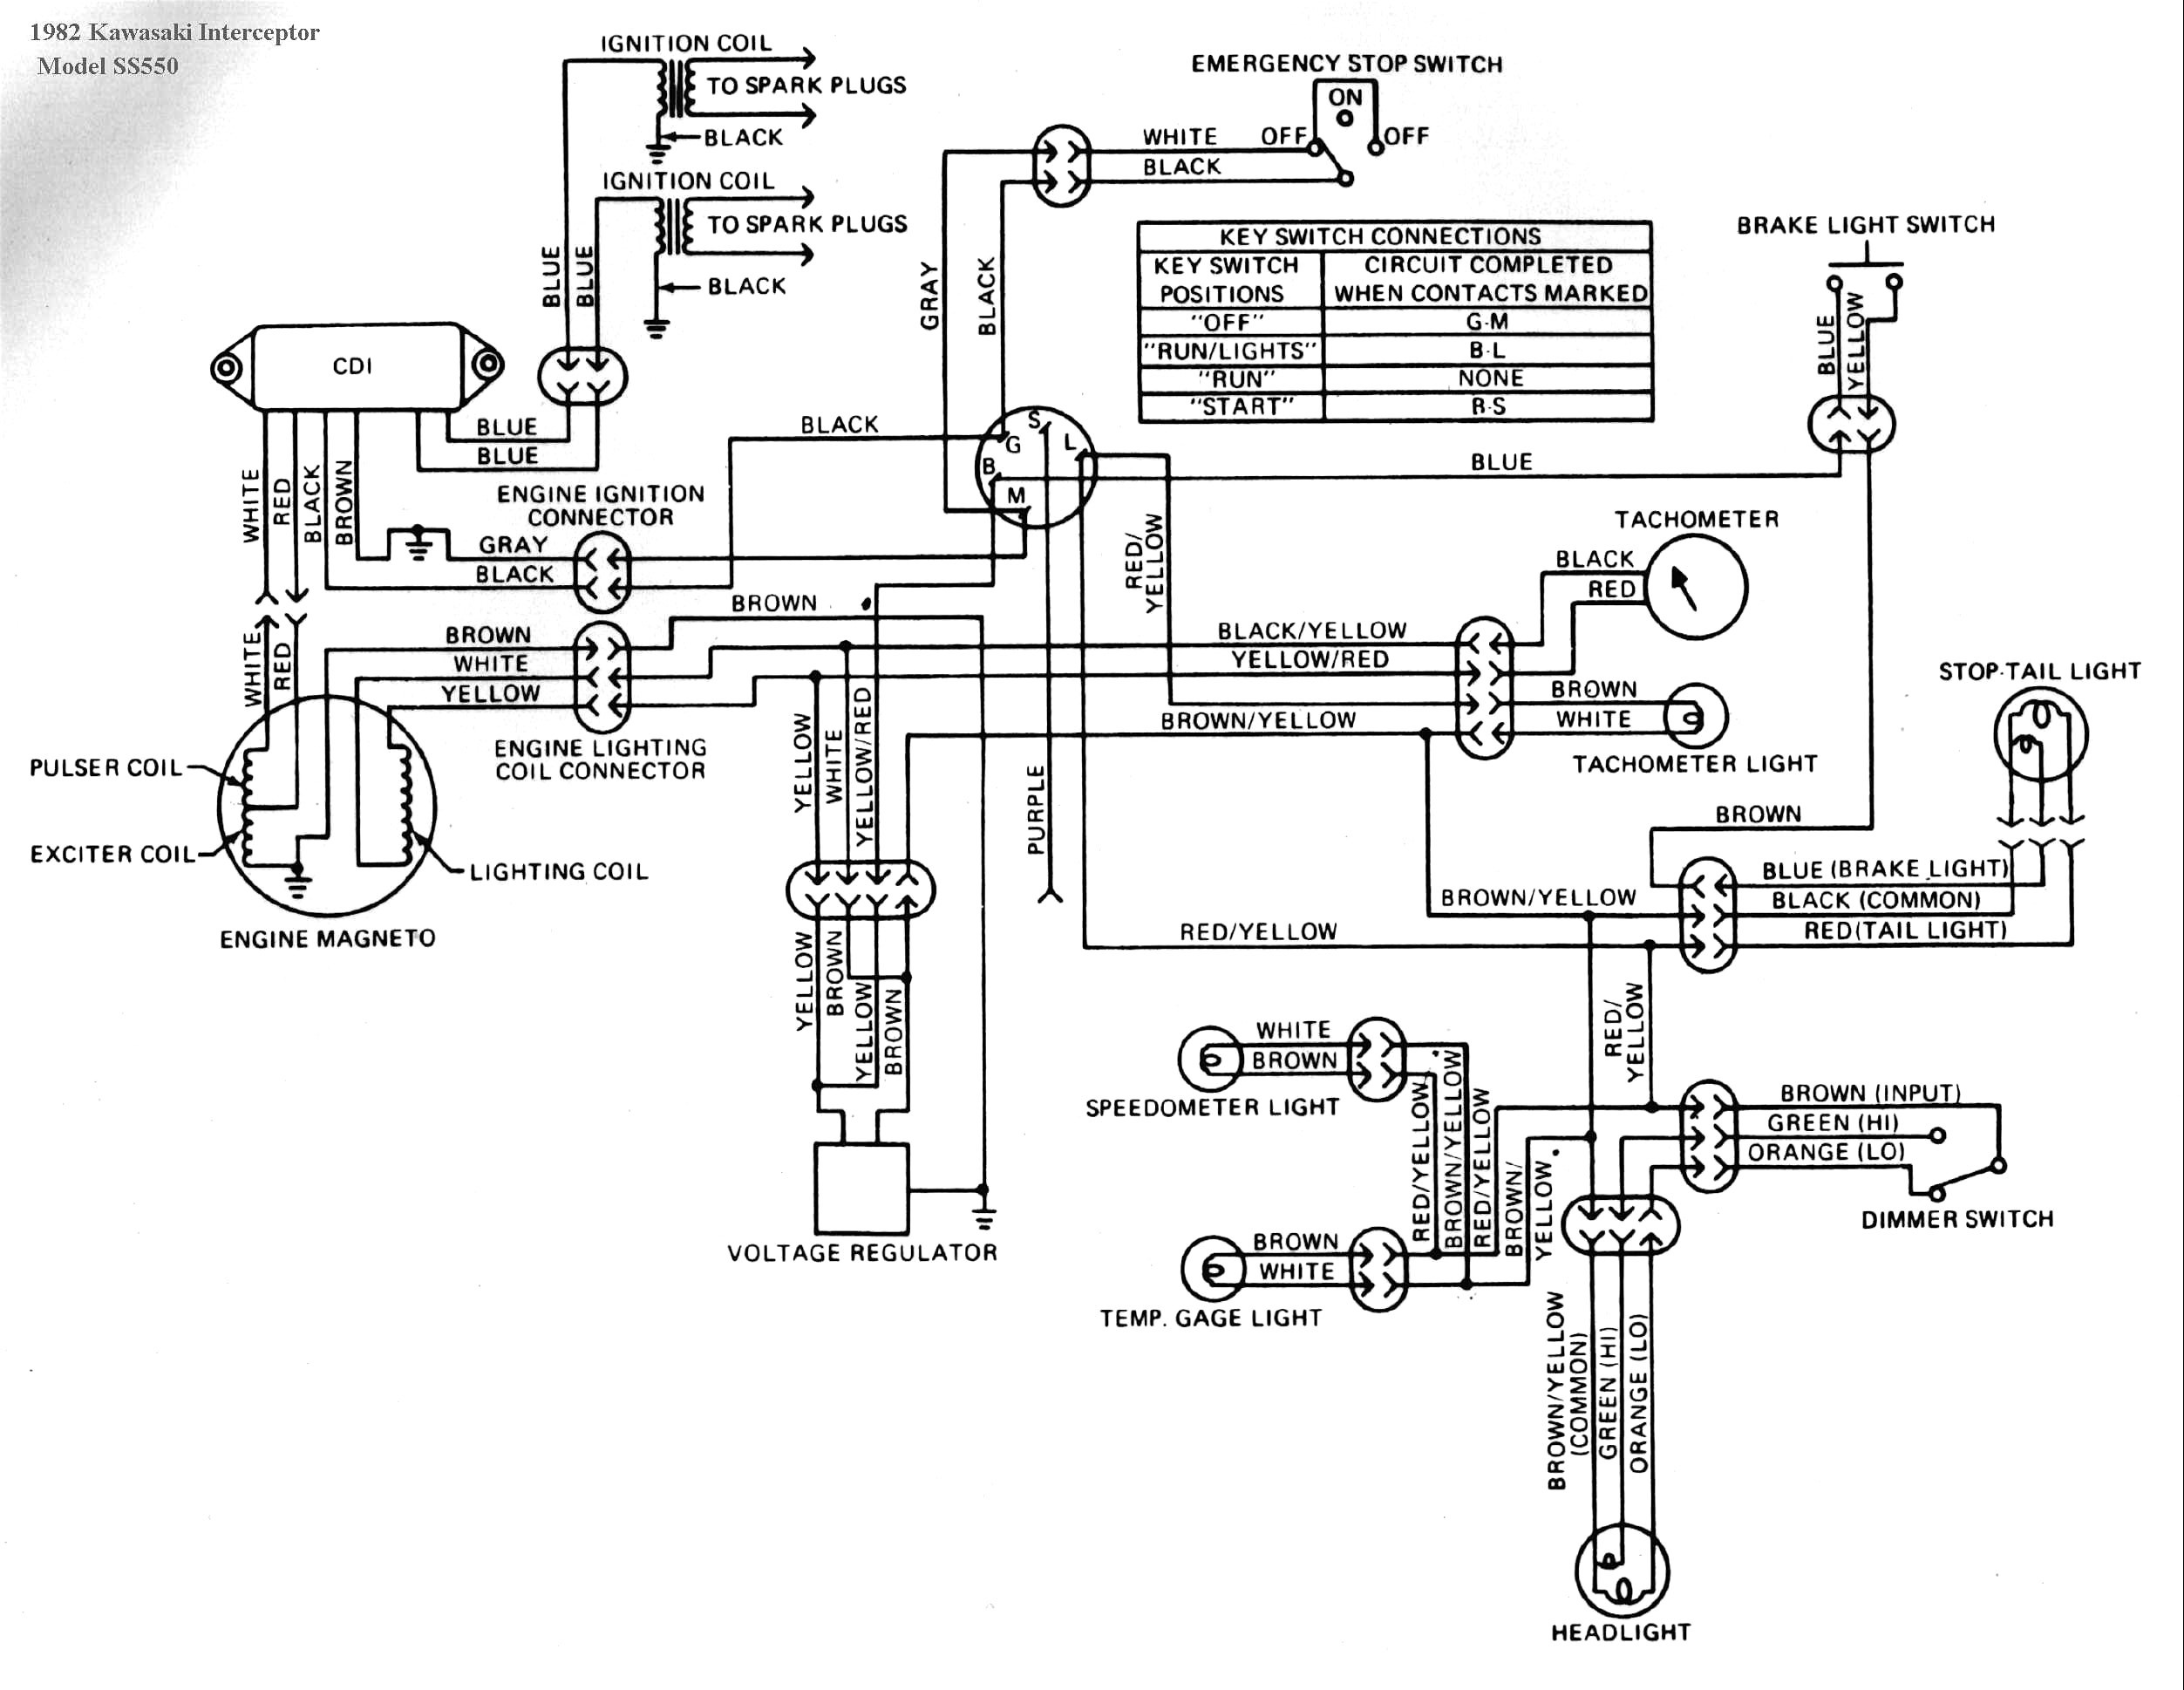 Wiring Diagram Yamaha Warrior 350